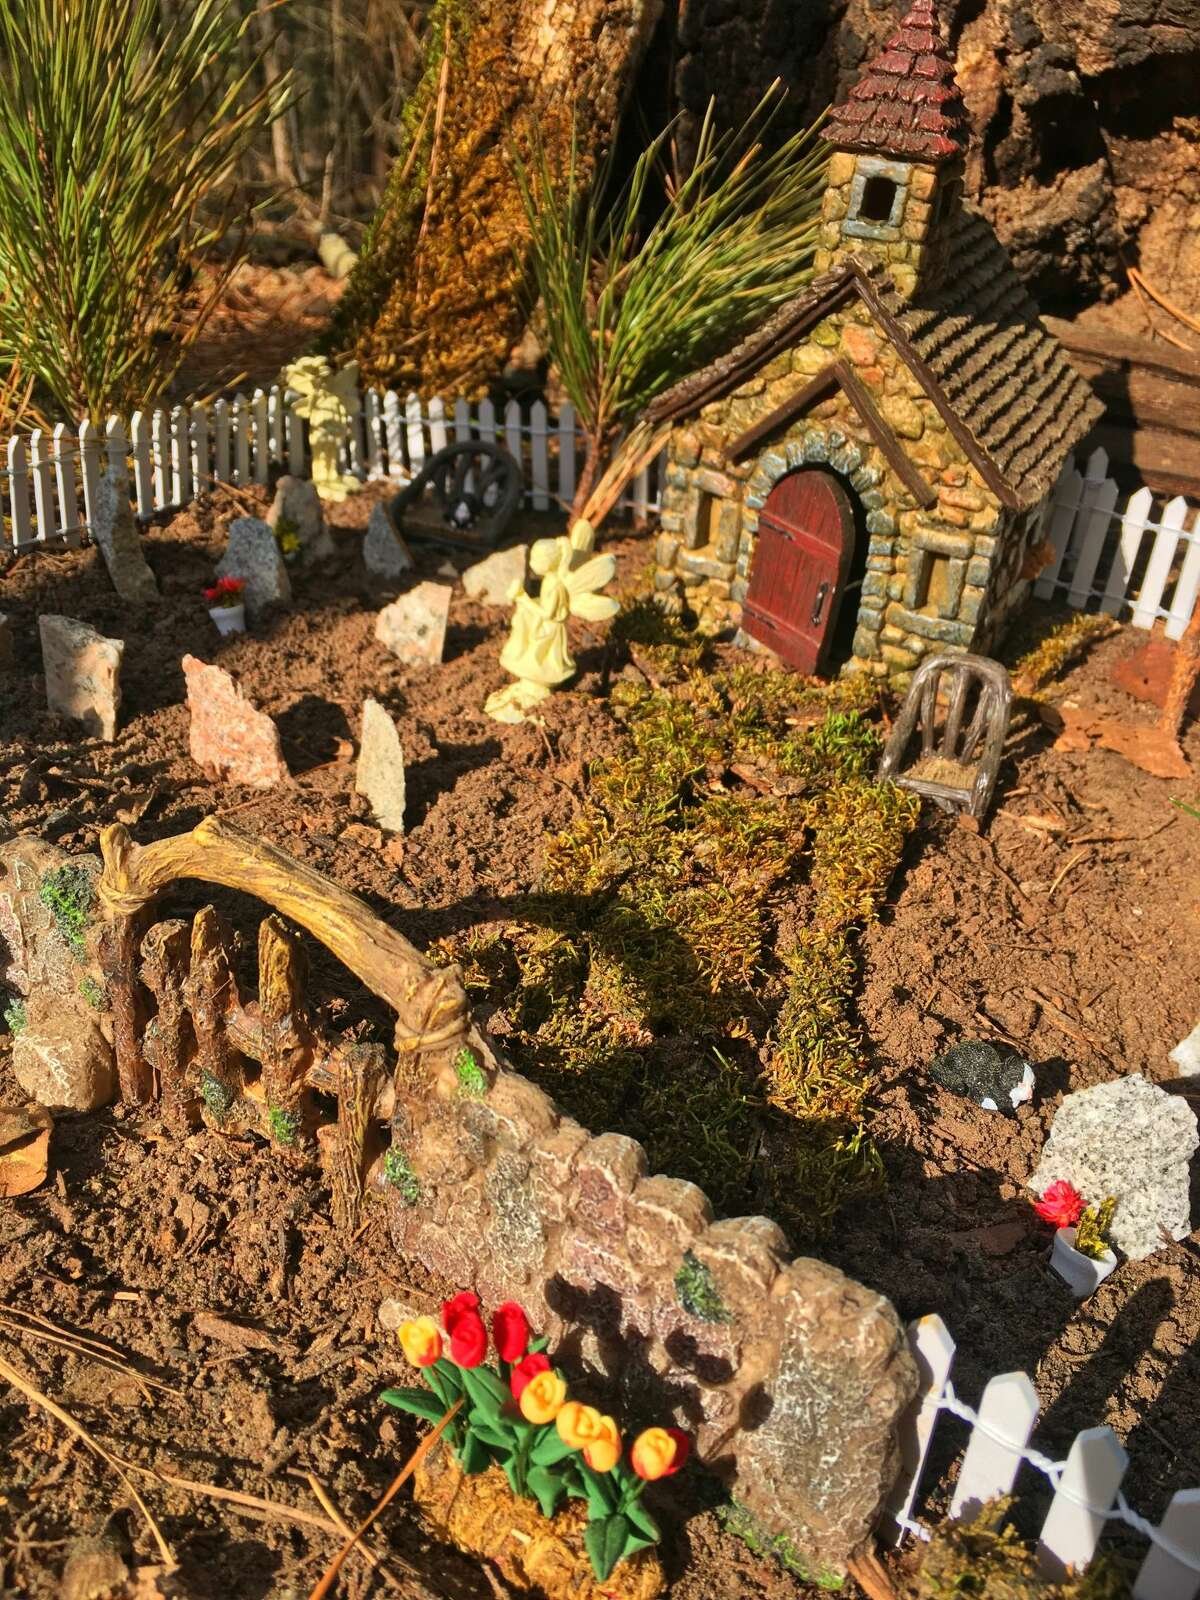 The Fairy Garden Project is on display in Palestine, Texas'Davey Dogwood Park.